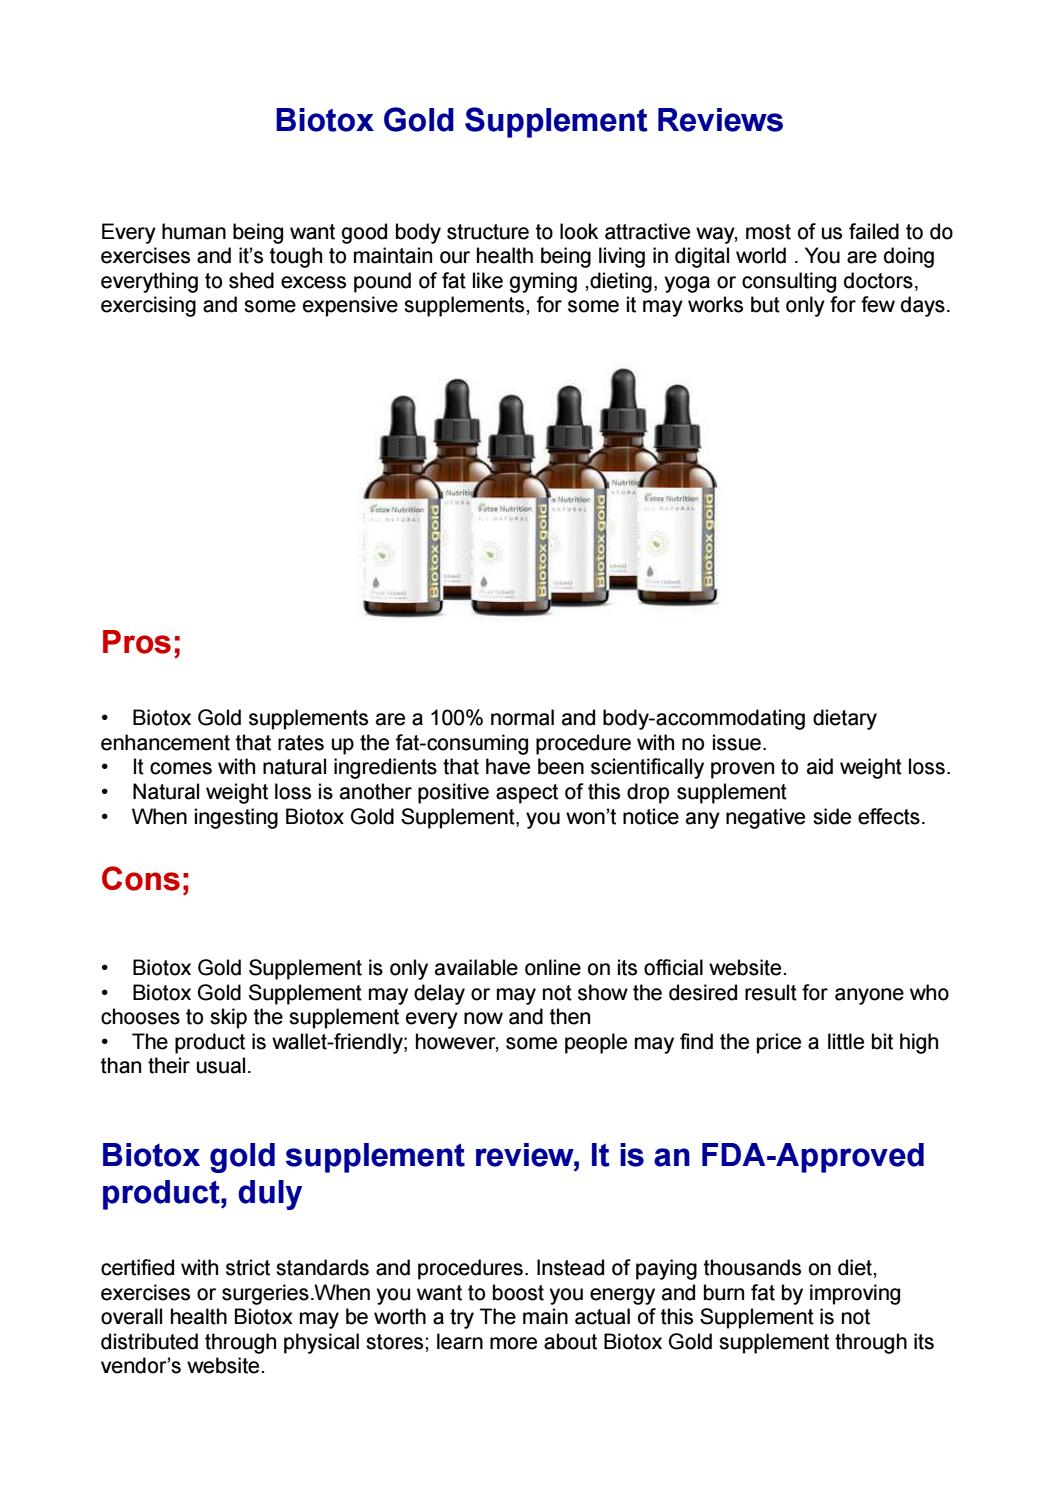 Biotox Gold Supplement Reviews By Biotoxgold